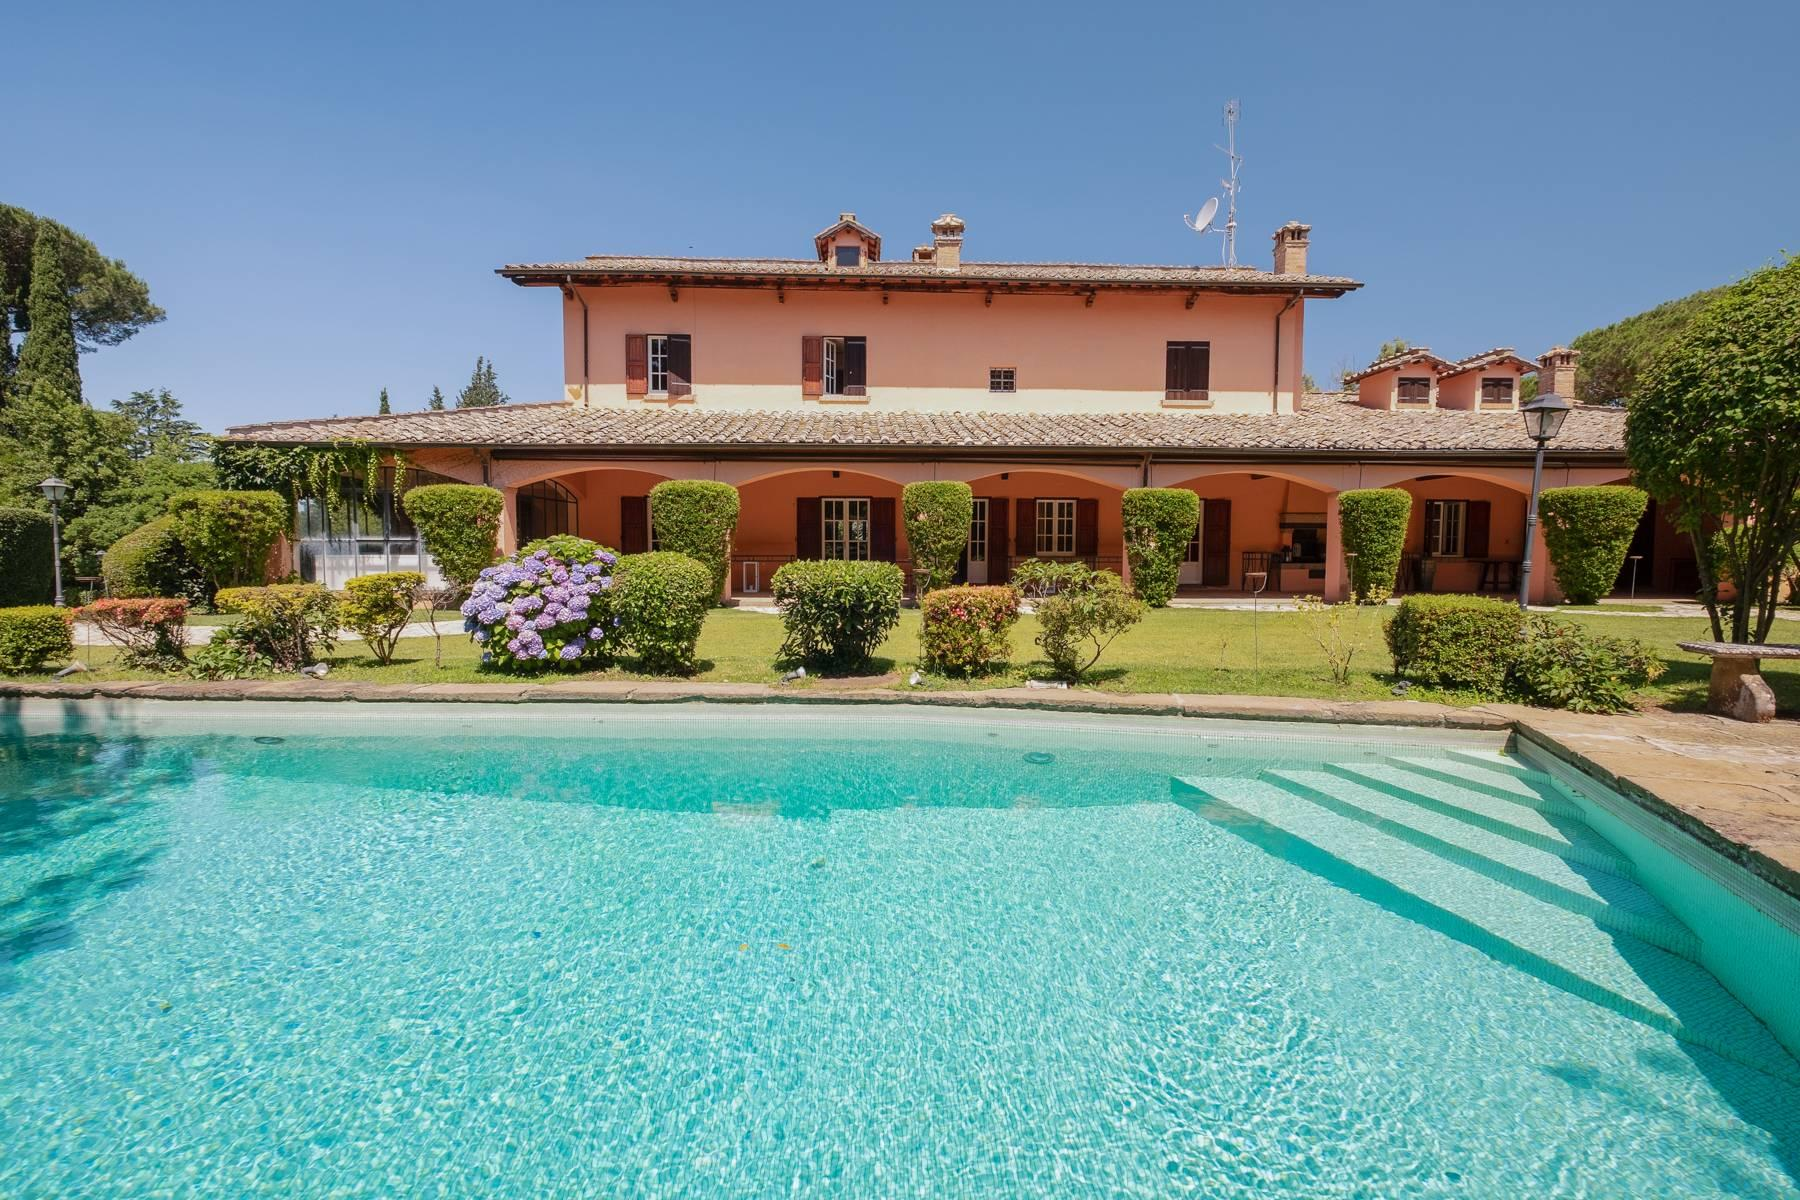 Claudia Estate: charm and elegance surrounded by nature - 4